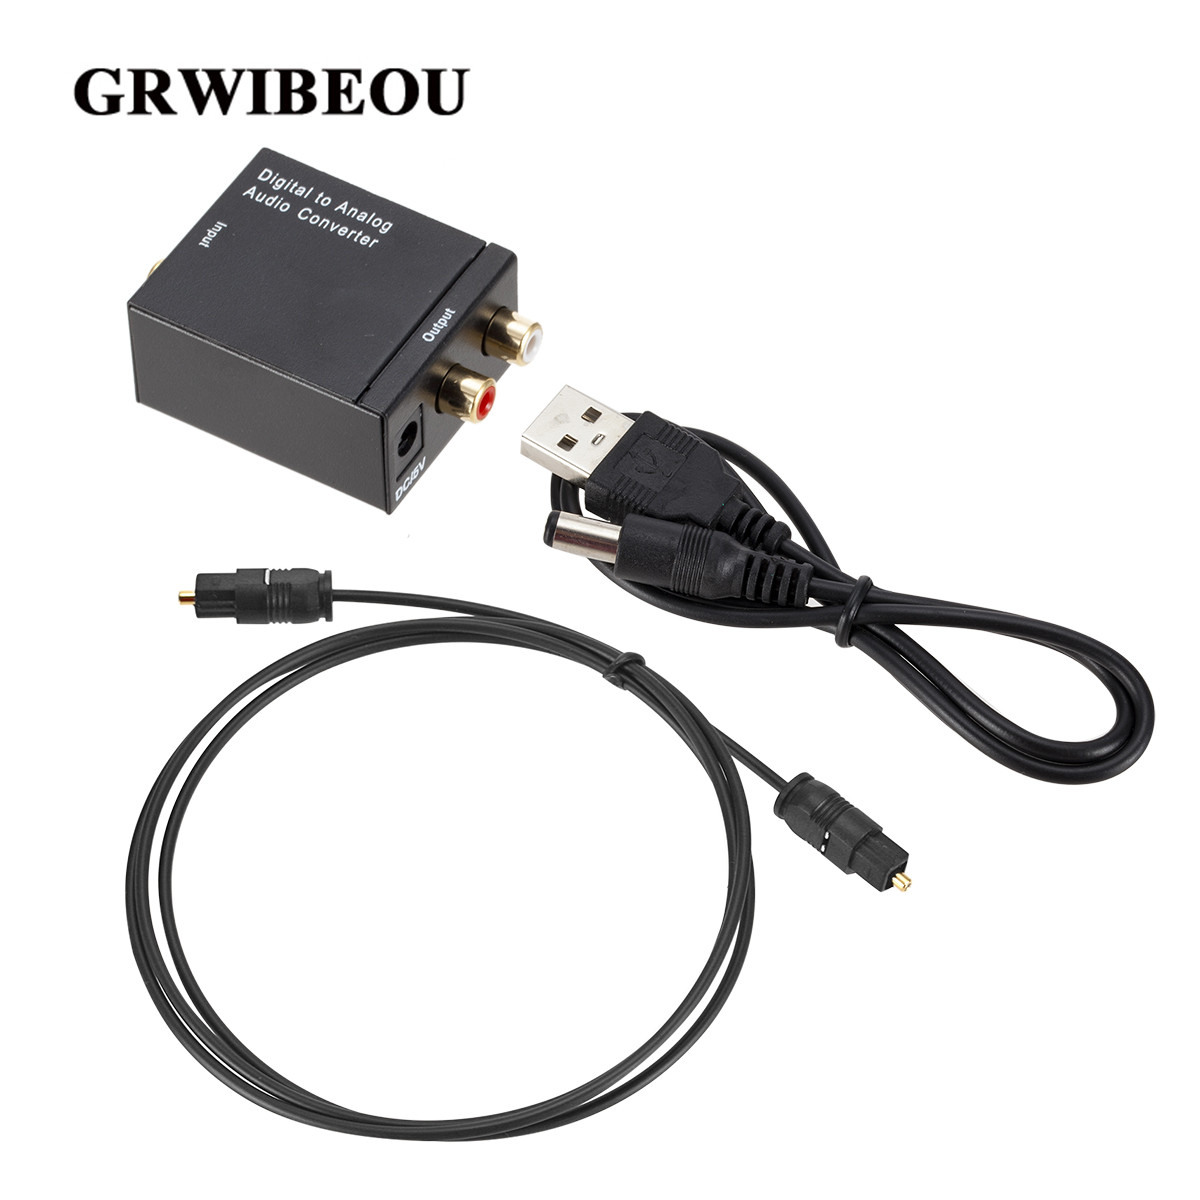 Grwibeou digital to analog audio converter fiber toslink coaxial - Audio dan video mudah alih - Foto 1